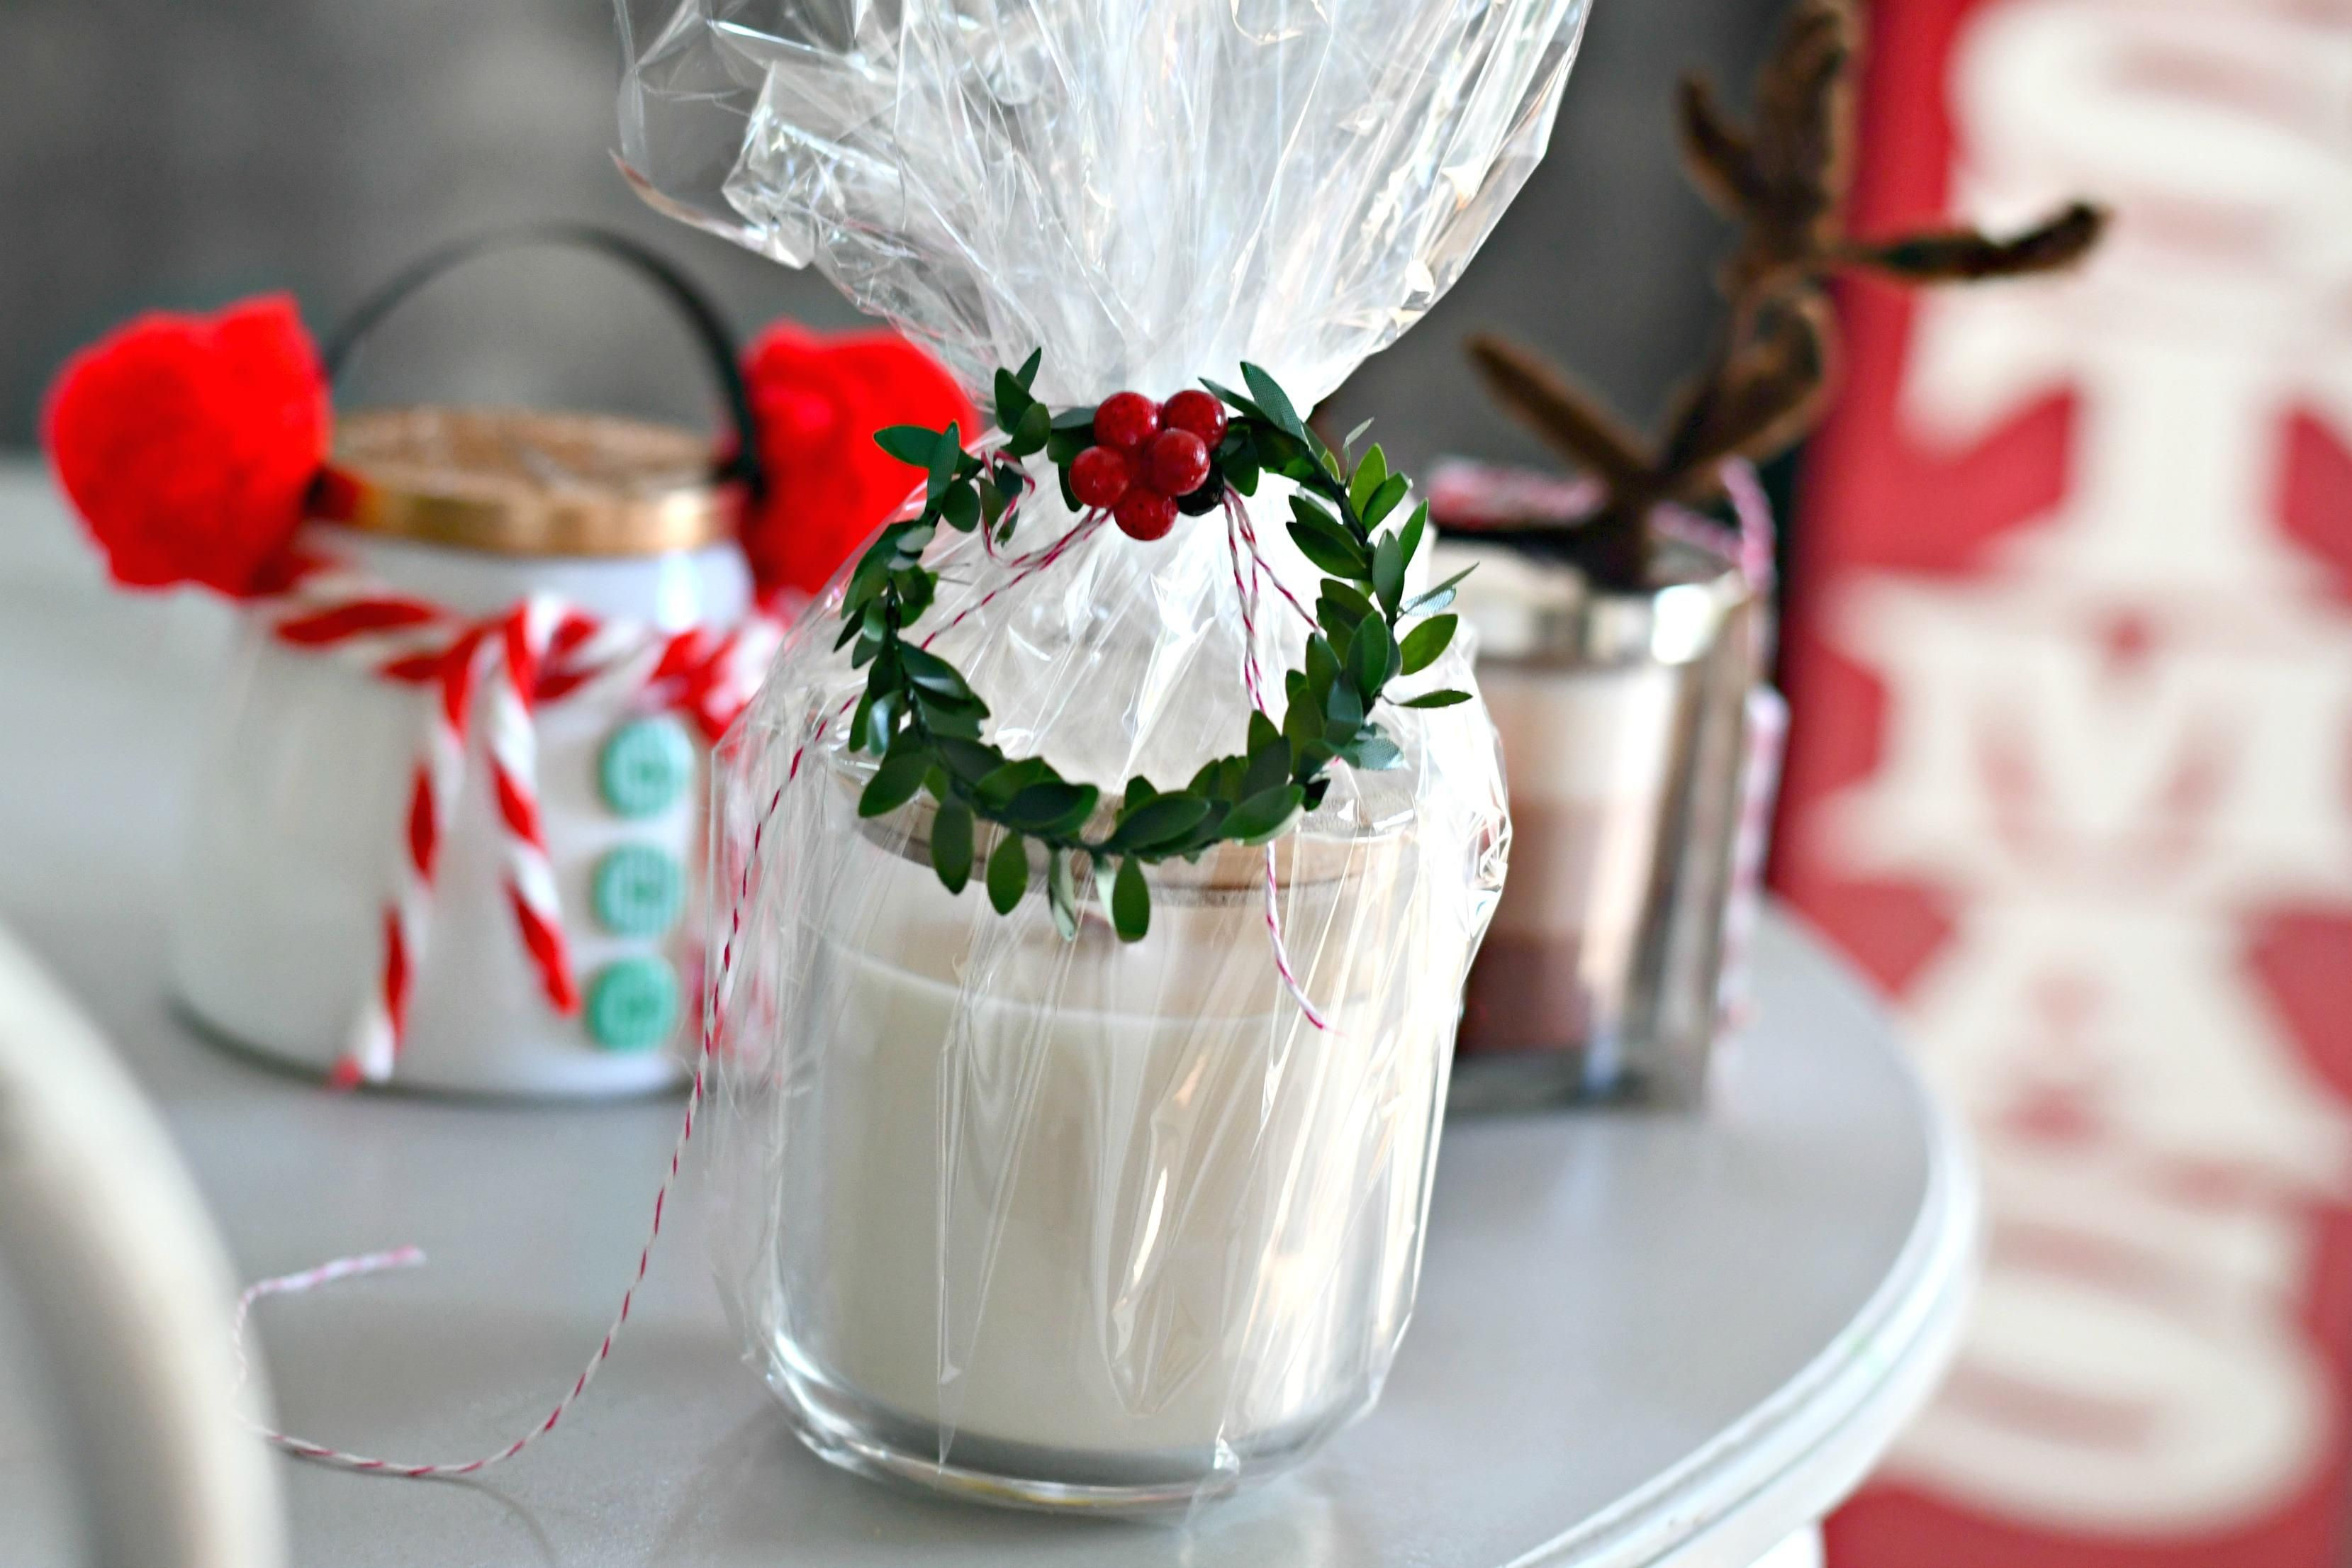 Easy Diy Christmas Candle Gift Ideas Cellophane Wrapping Example Gift Wrapping Candles Candle Gift Diy Candle Gift